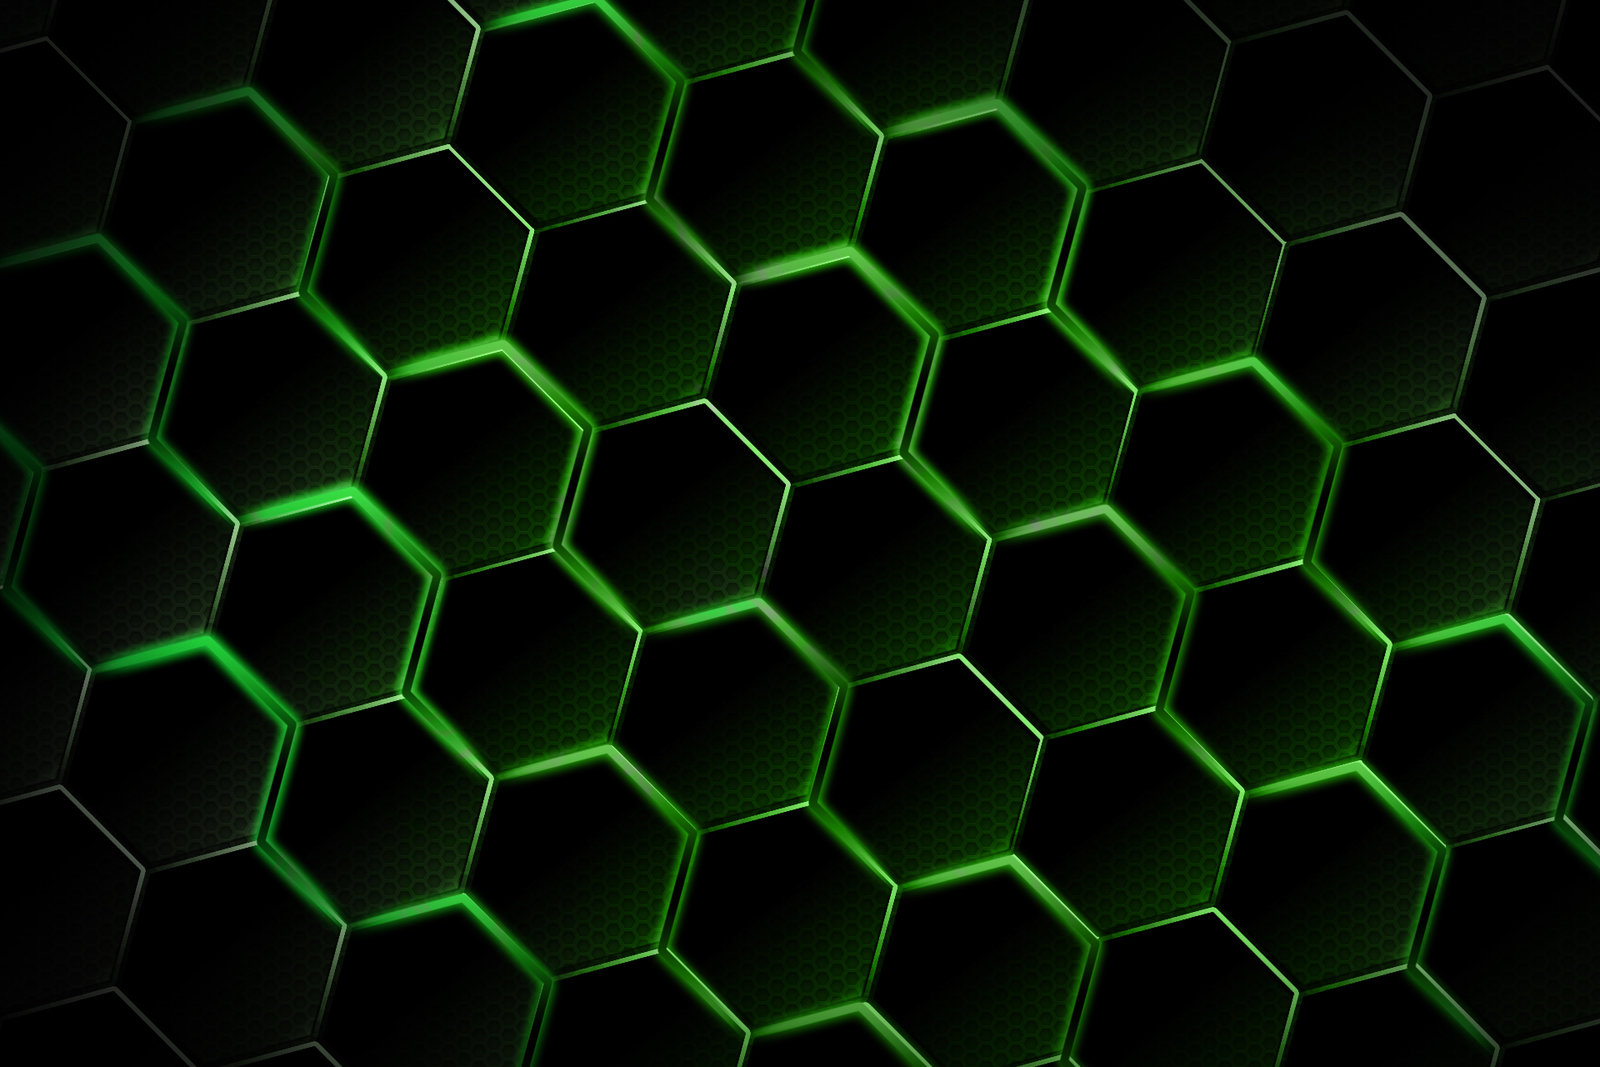 Green Honeycomb Wallpaper